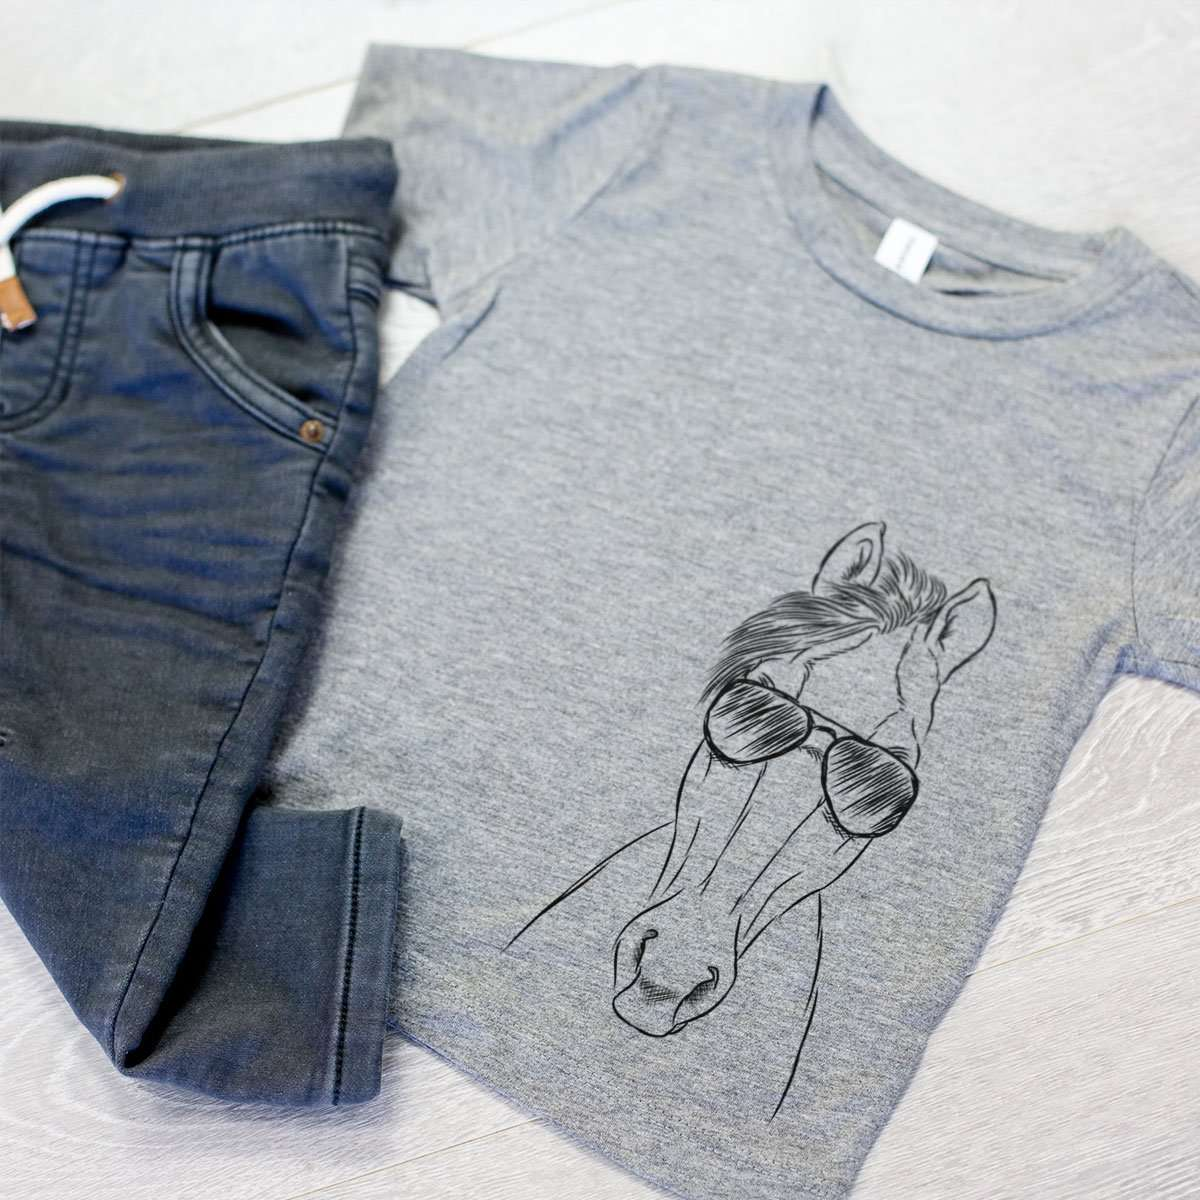 Rio the Horse - Kids/Youth/Toddler Shirt